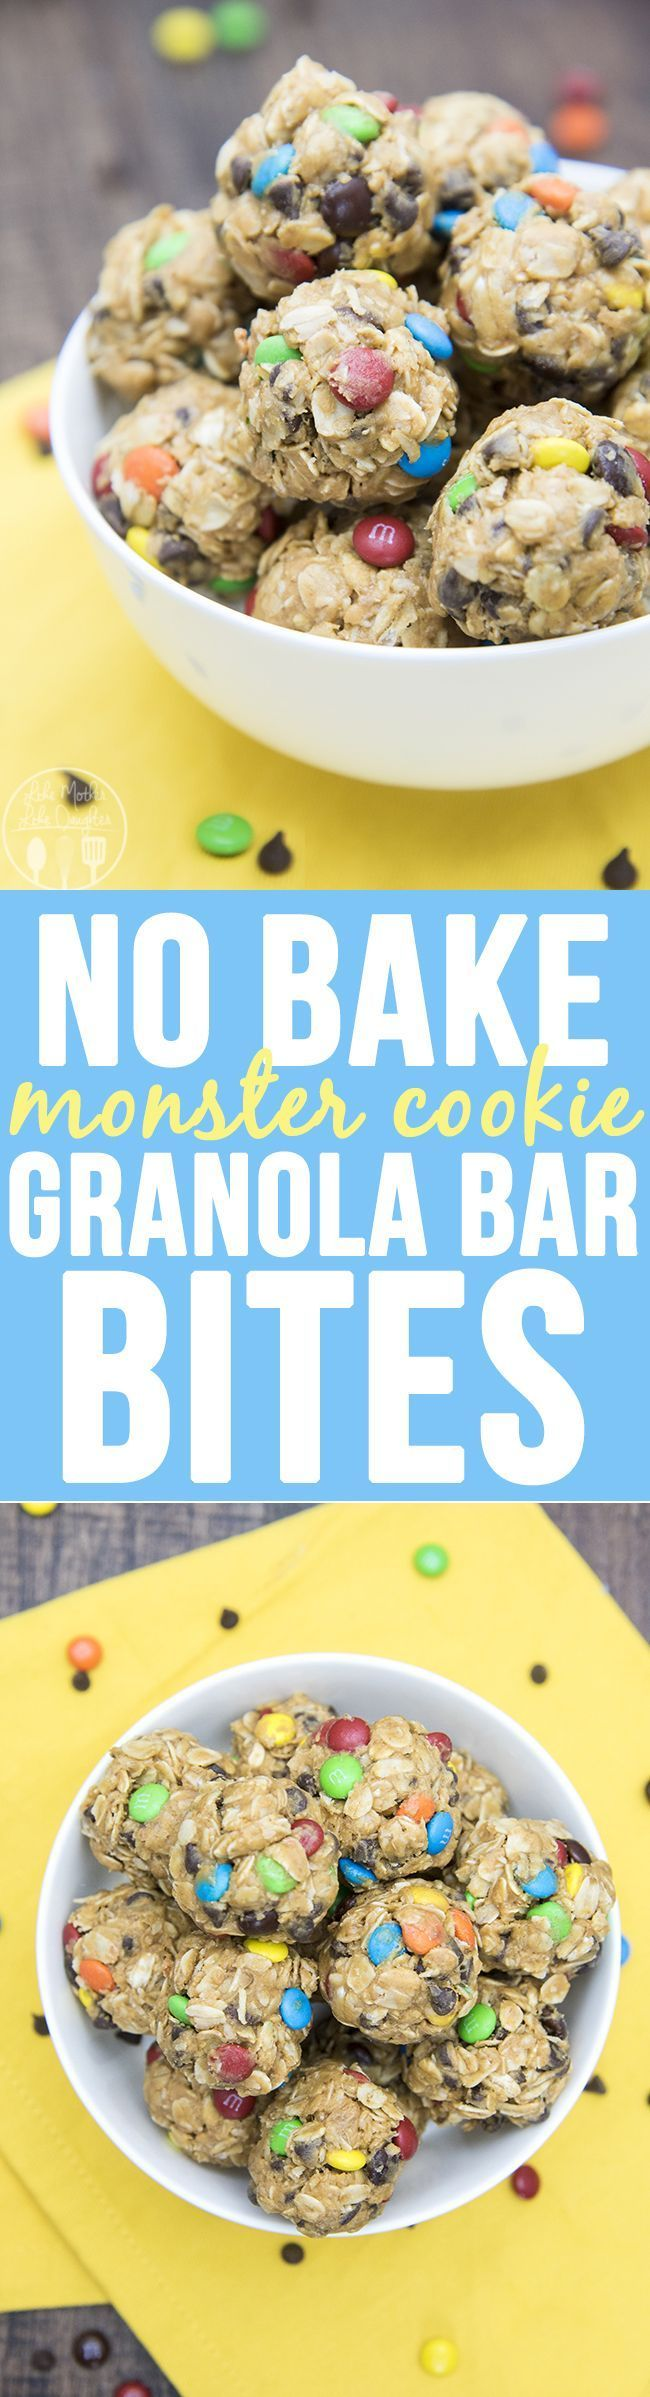 These no bake granola bar bites taste just like monster cookies, without the flour and white sugar. They're perfect for a healthier snack!